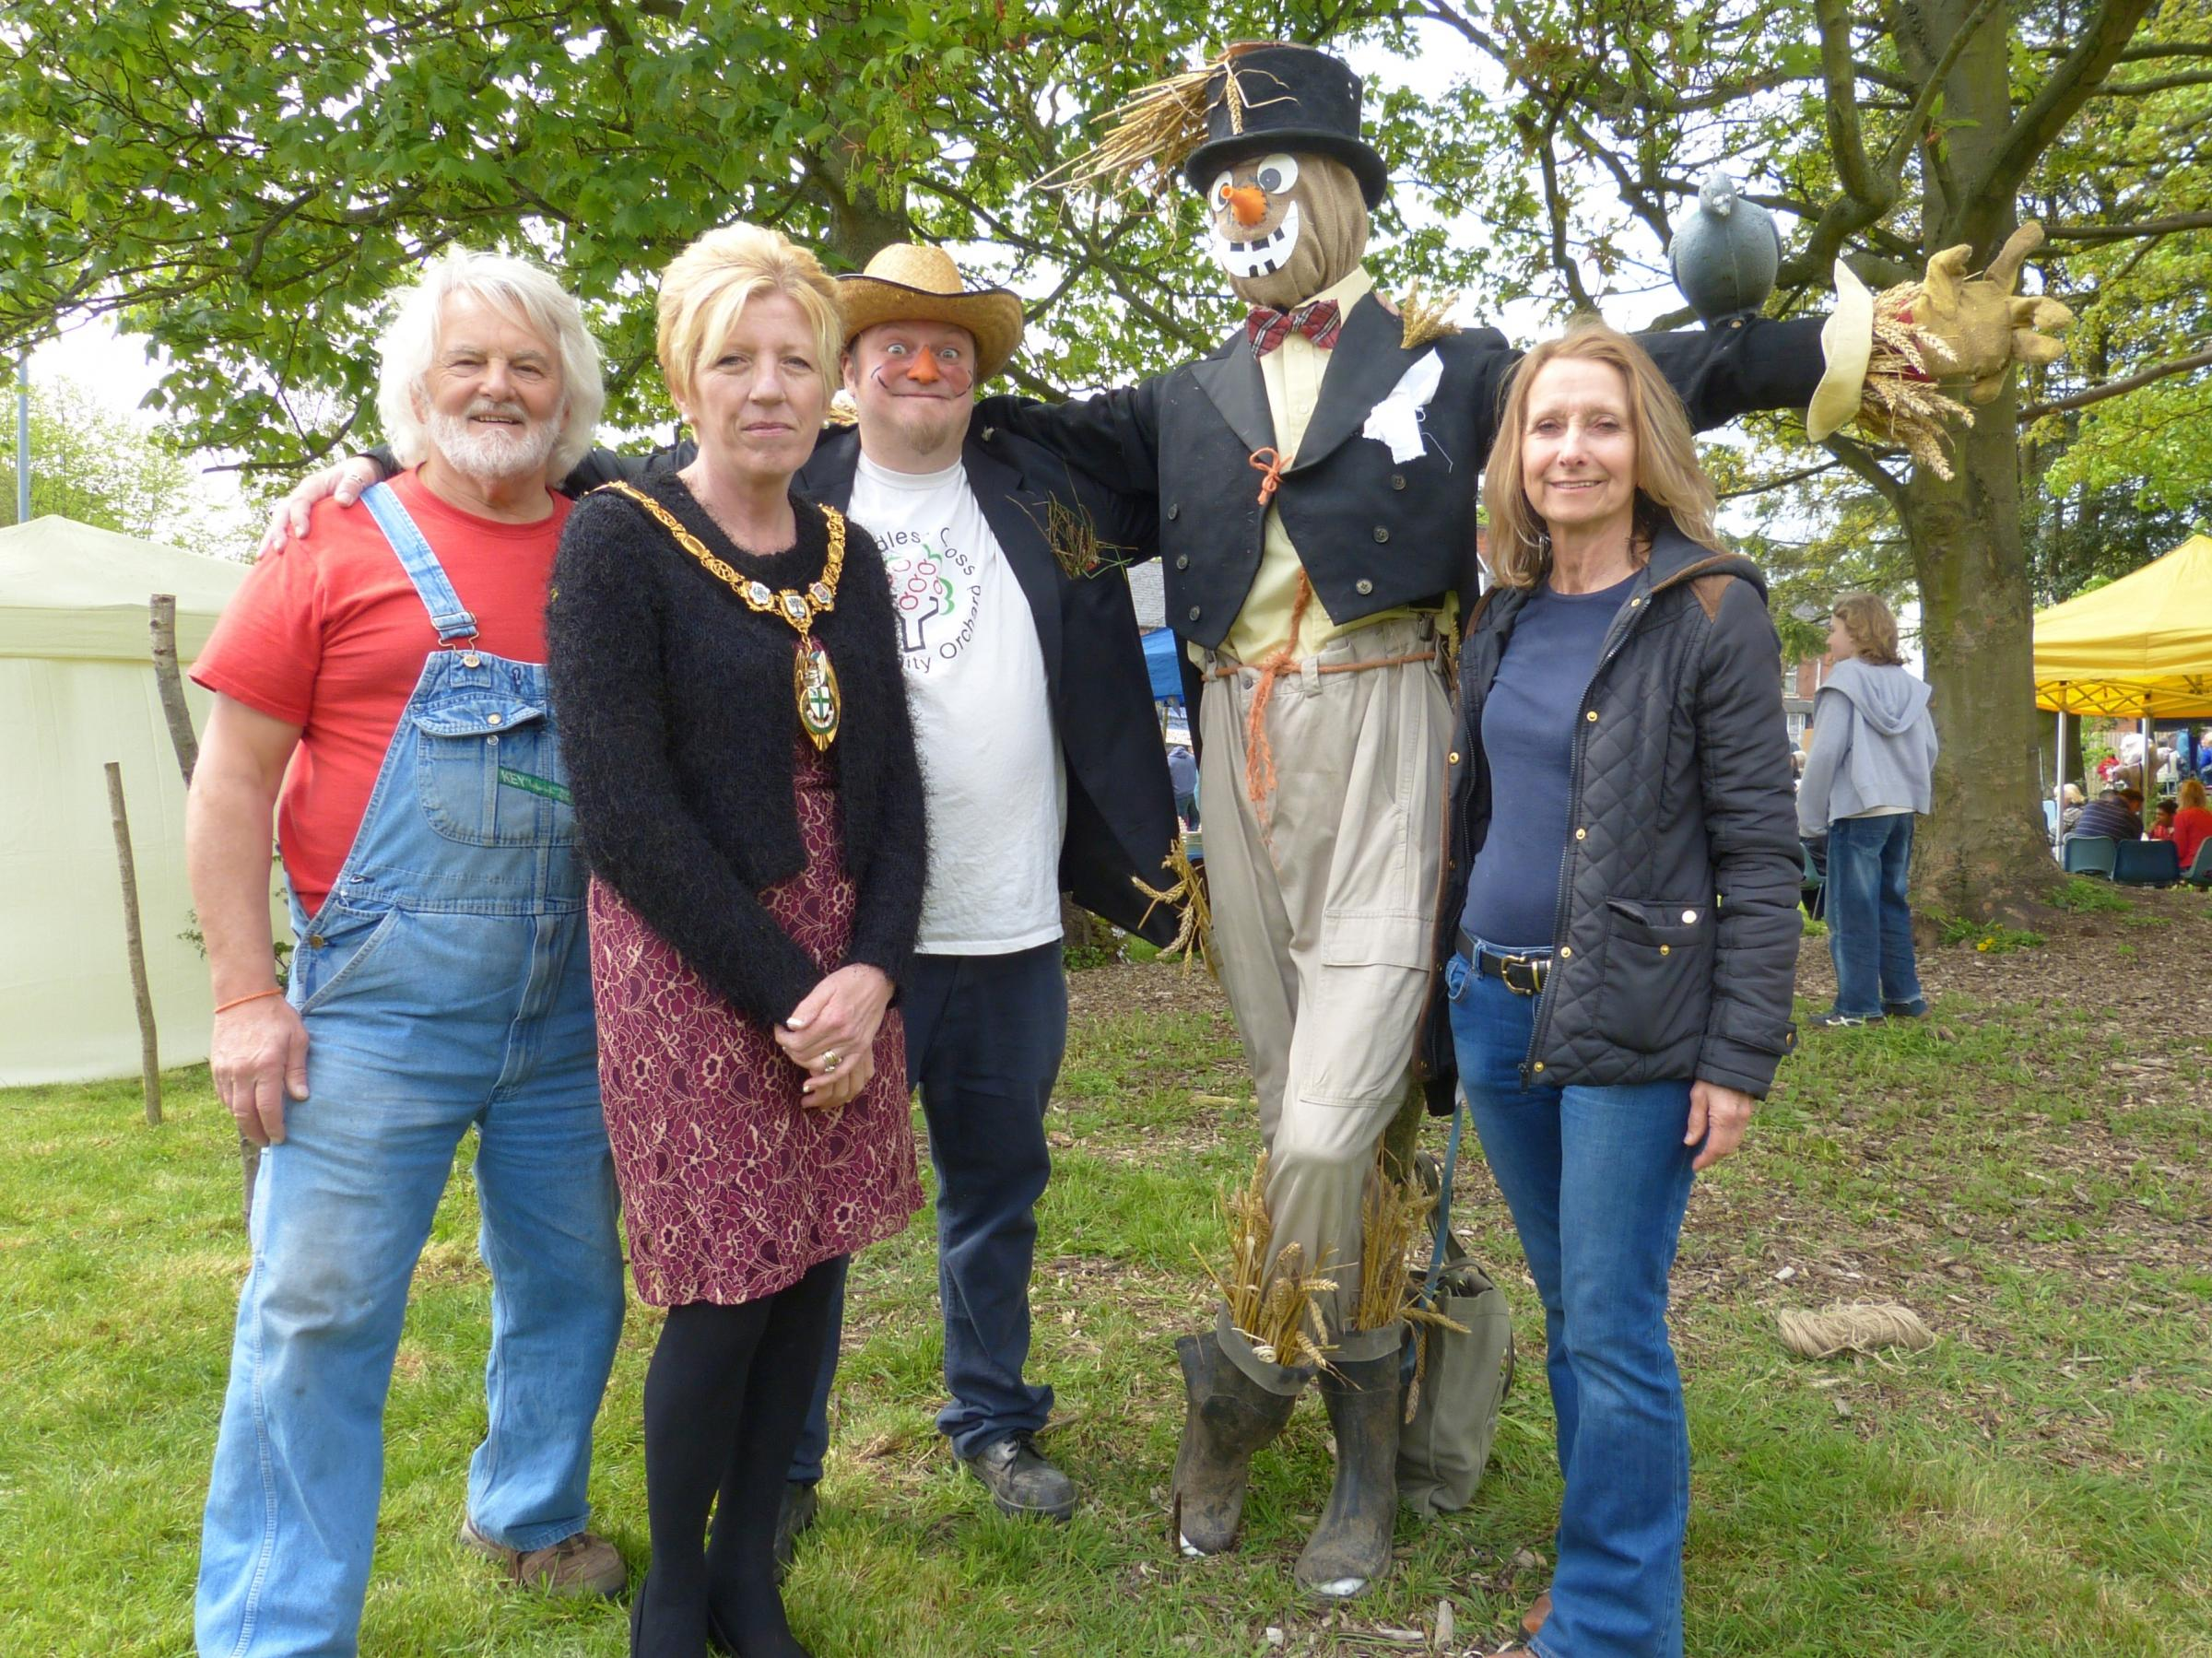 Hundreds flock to Headless Cross Green for May fair